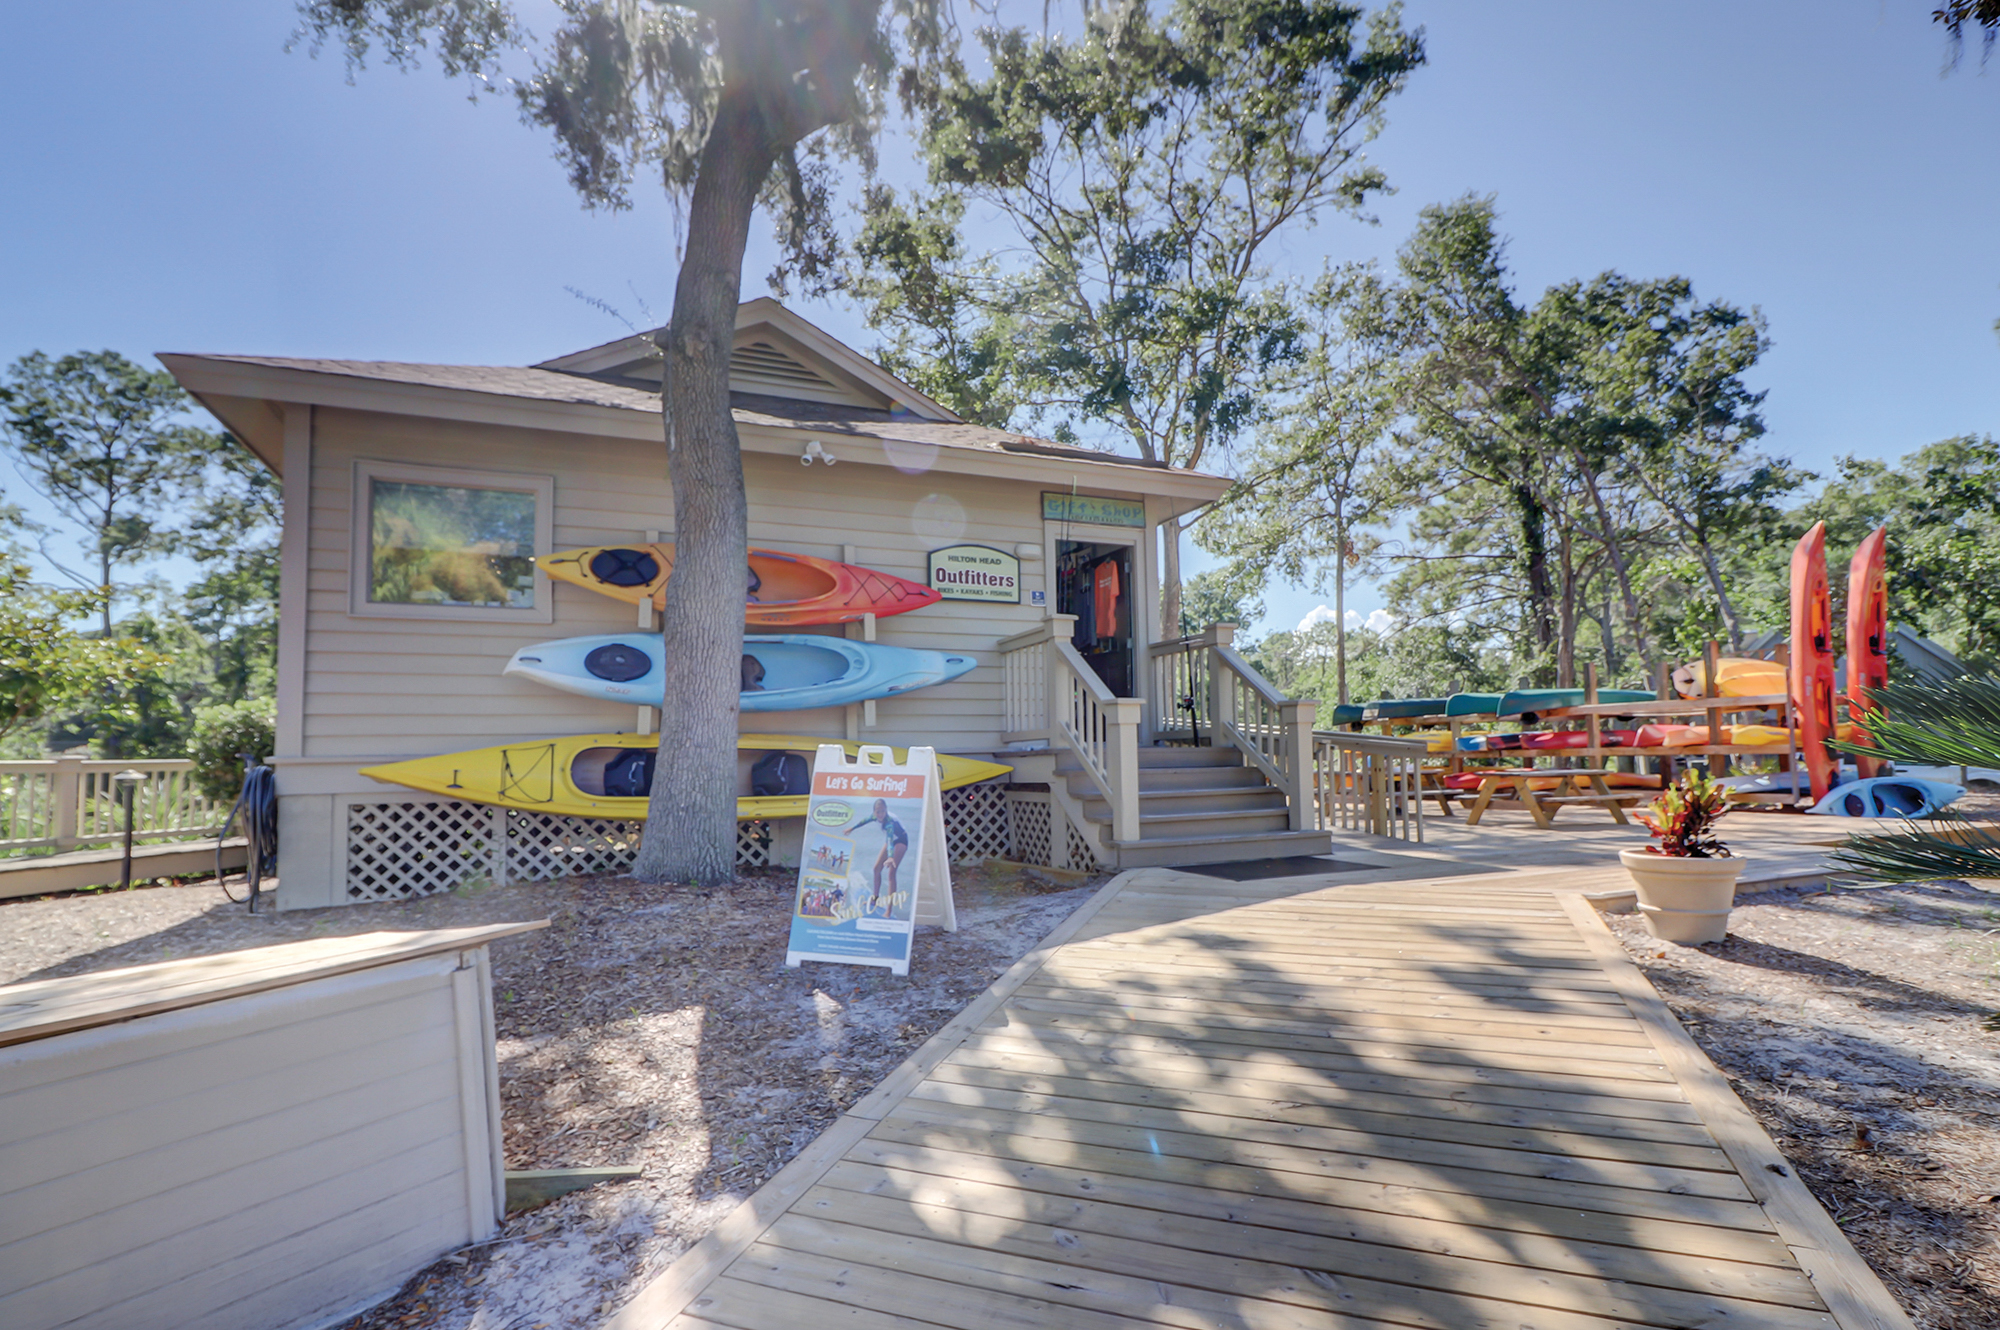 Kayak, Bike Rentals and Outfitters Center in Palmetto Dunes